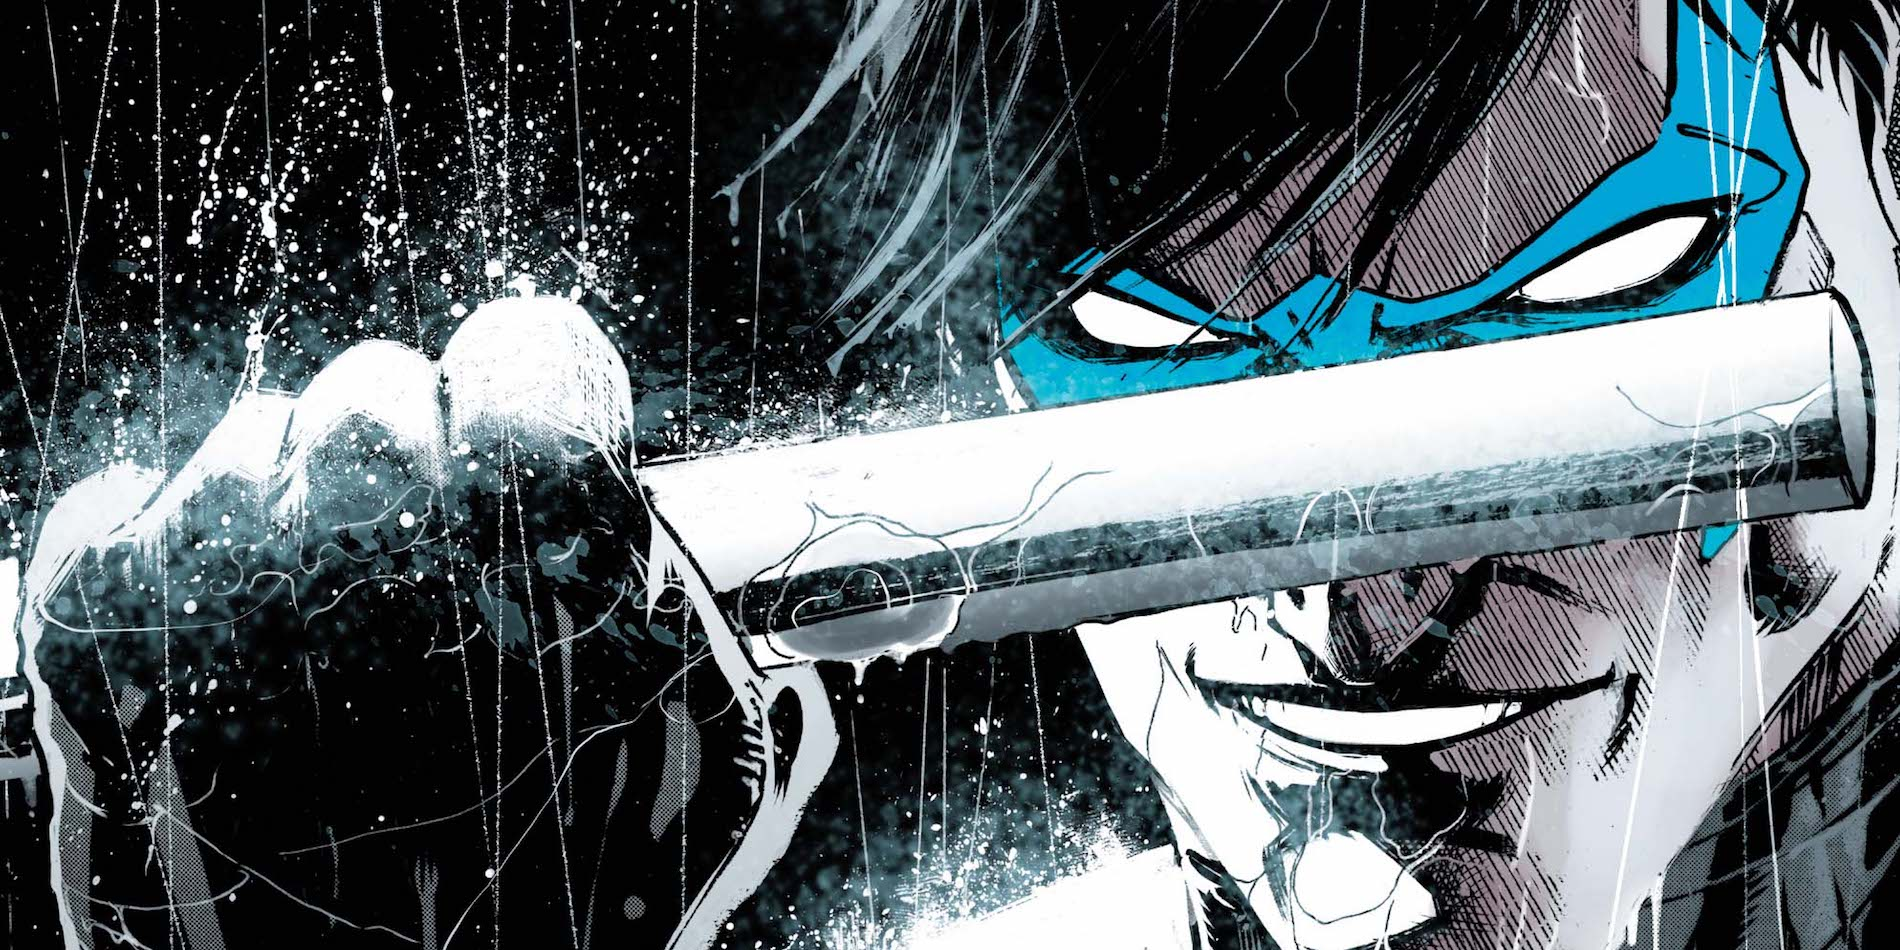 Nightwing Comic Writer On What He Wants in the Film